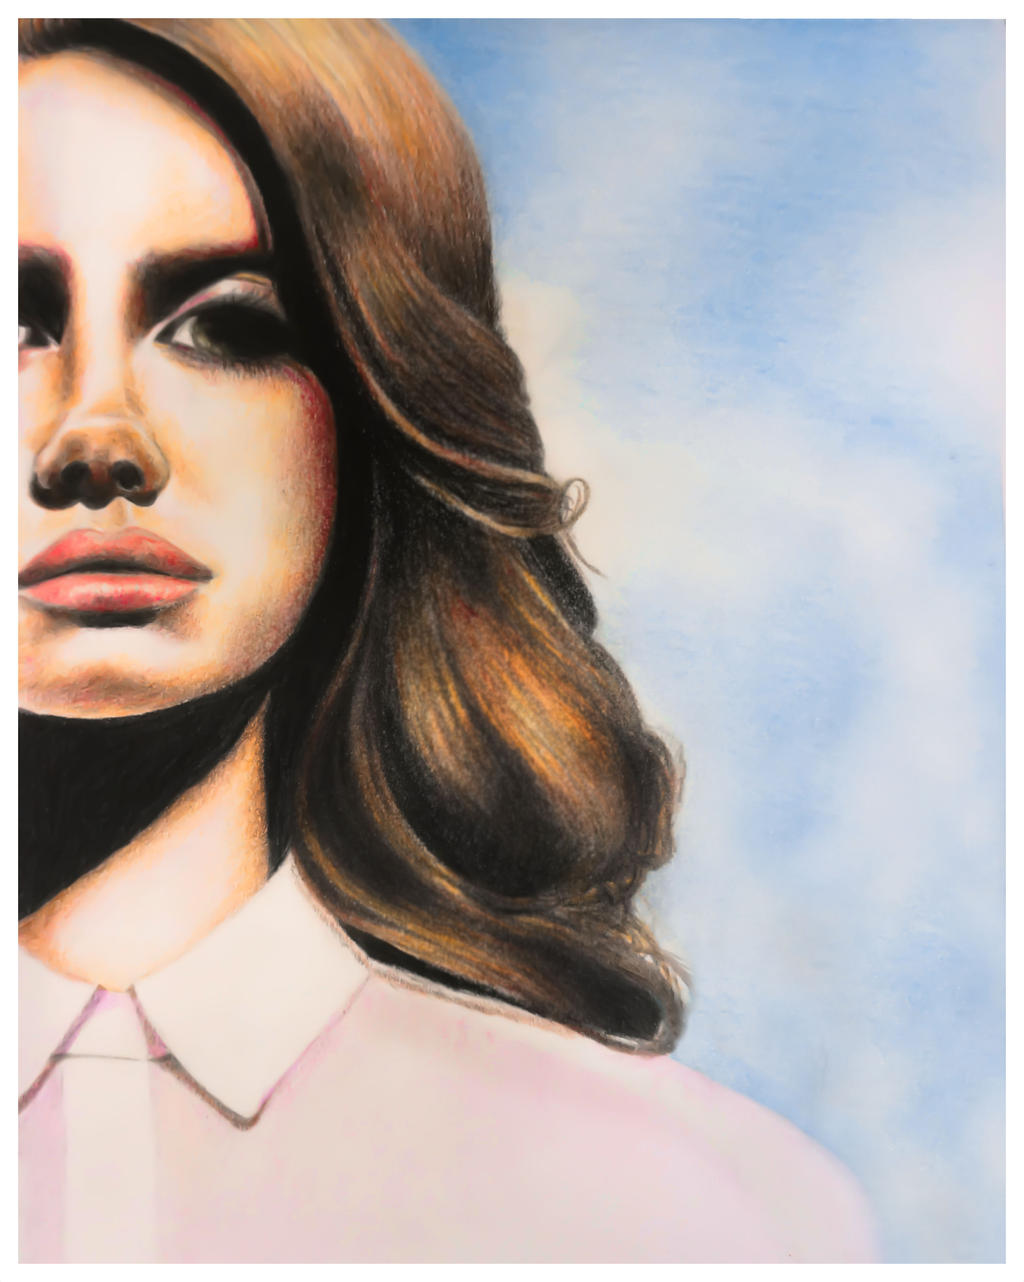 Lana del rey born to die by idhrenniel13 on deviantart for Lana del rey coloring pages